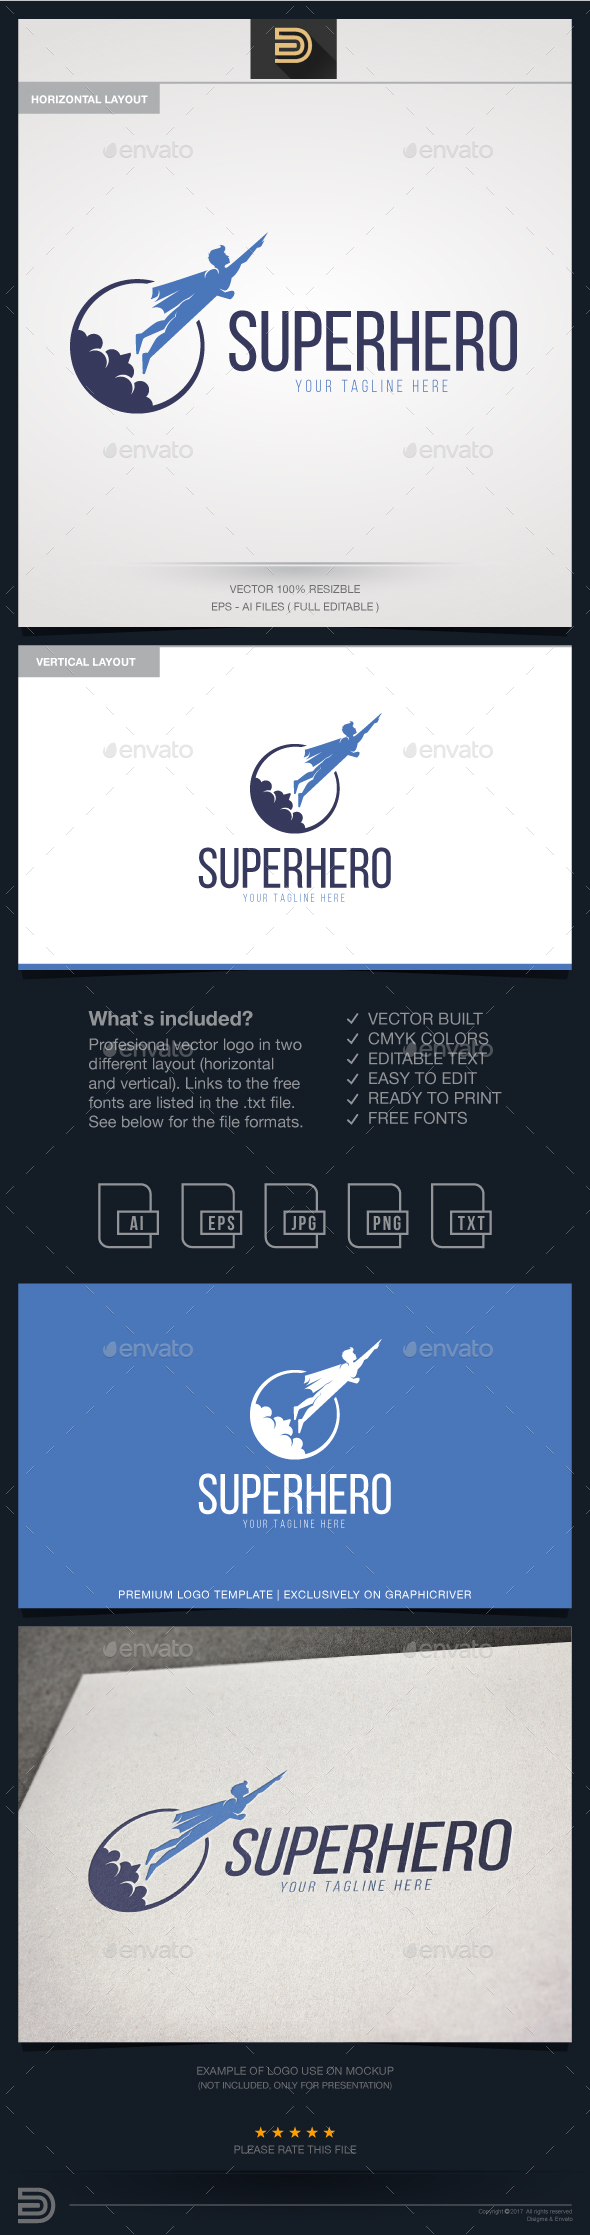 Below are two different file formats of the superman logo in a beveled - Super Hero Logo Template Humans Logo Templates